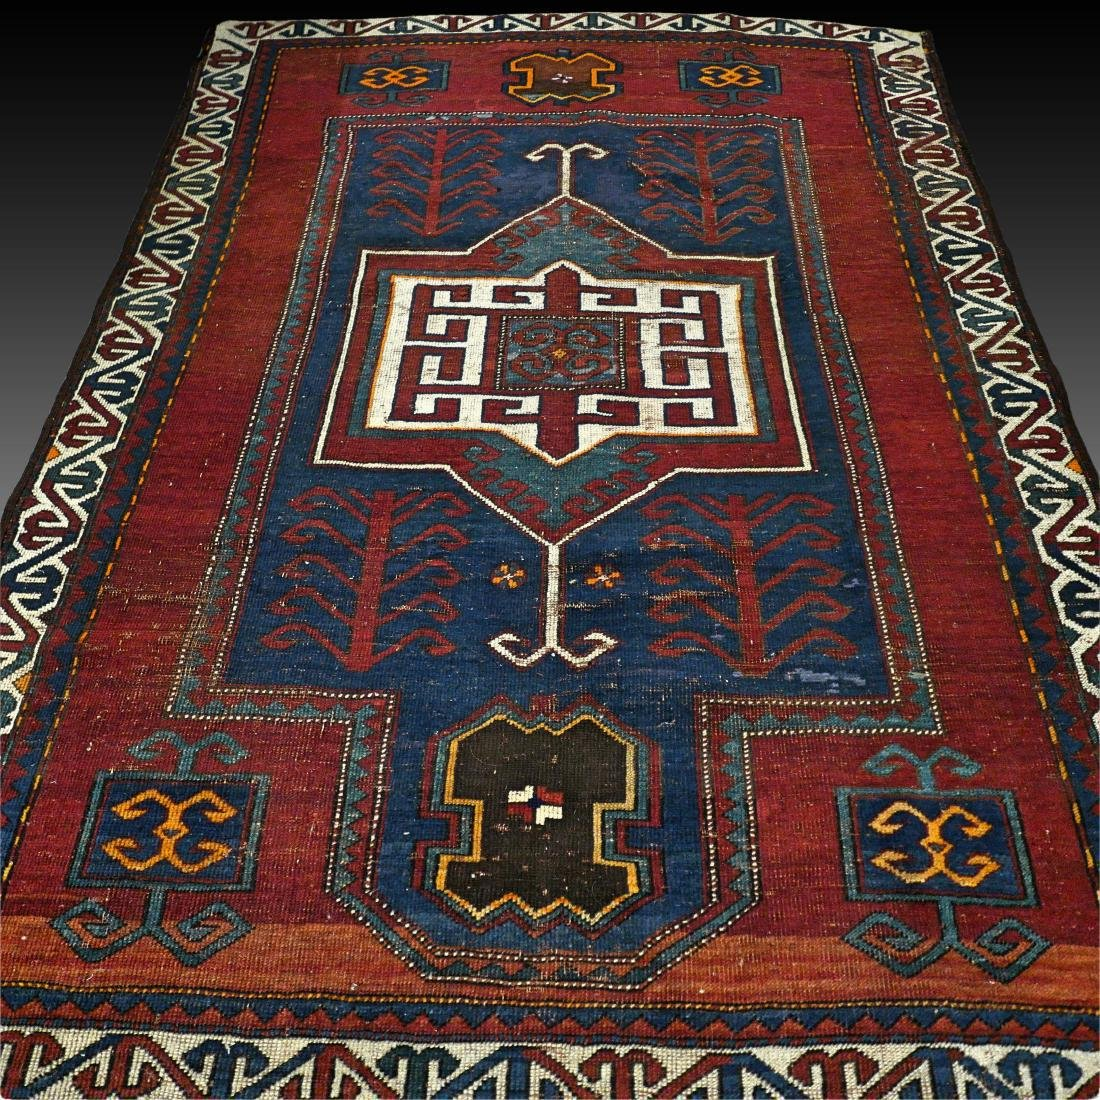 6.6 x 4.6 Caucasian Kazak rug - early 1900s -